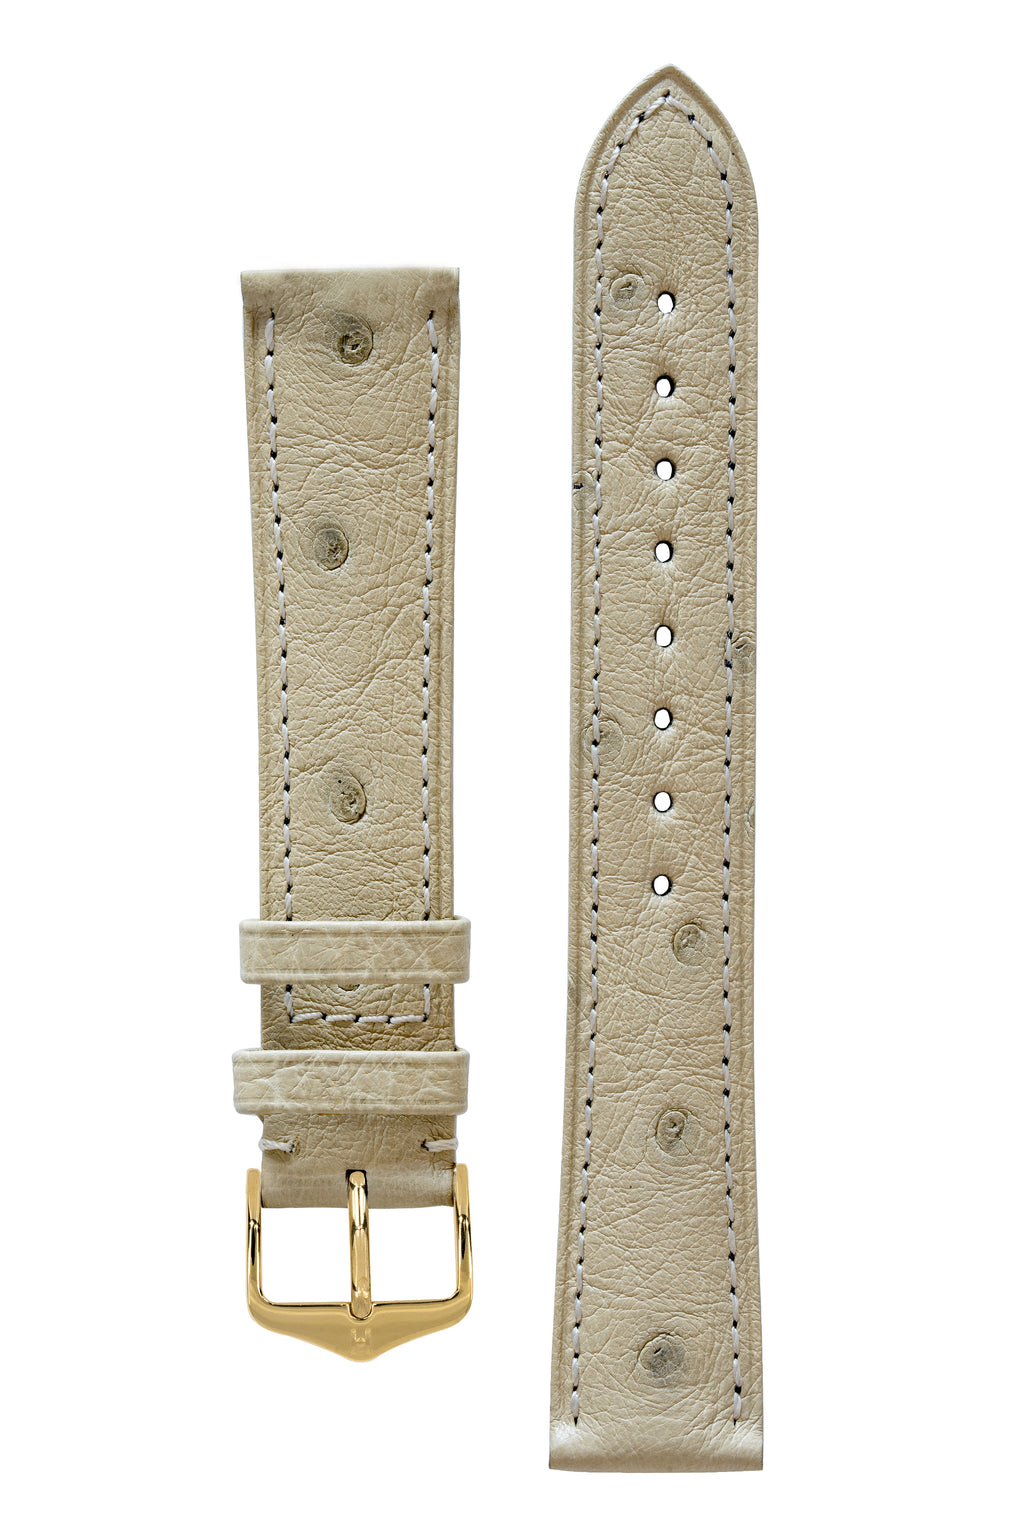 Hirsch MASSAI OSTRICH Leather Watch Strap in BEIGE